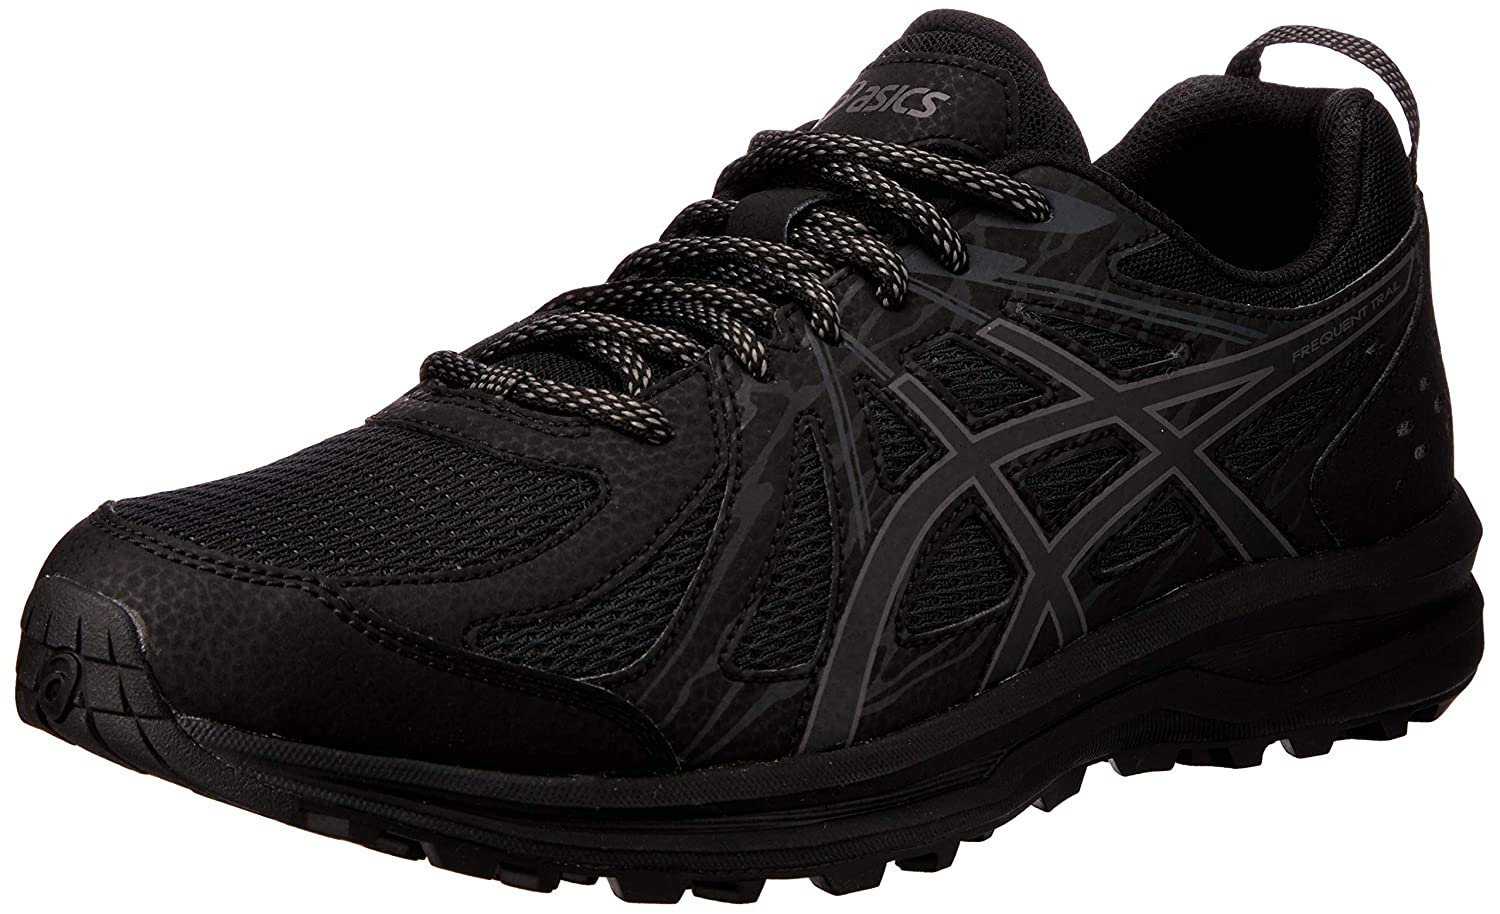 black grey carbone ASICS Men's Frequent Trail Running shoes